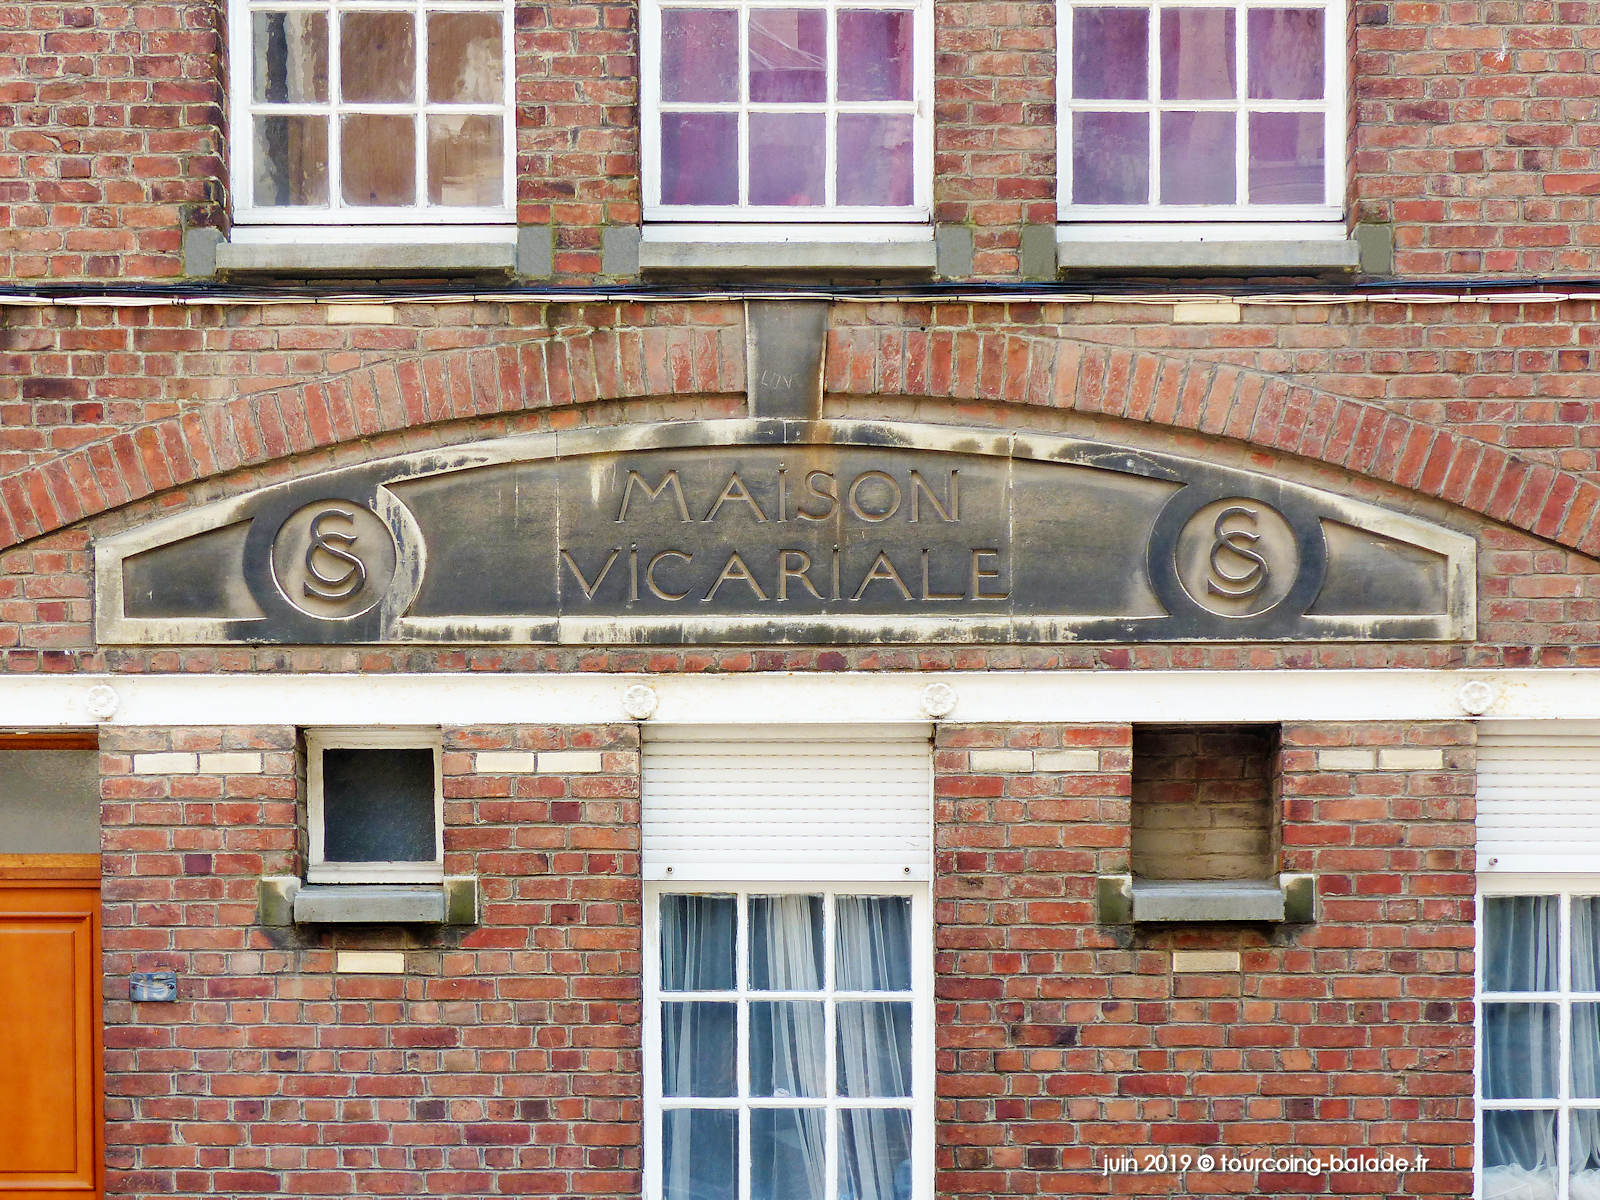 Maison Vicariale, Tourcoing